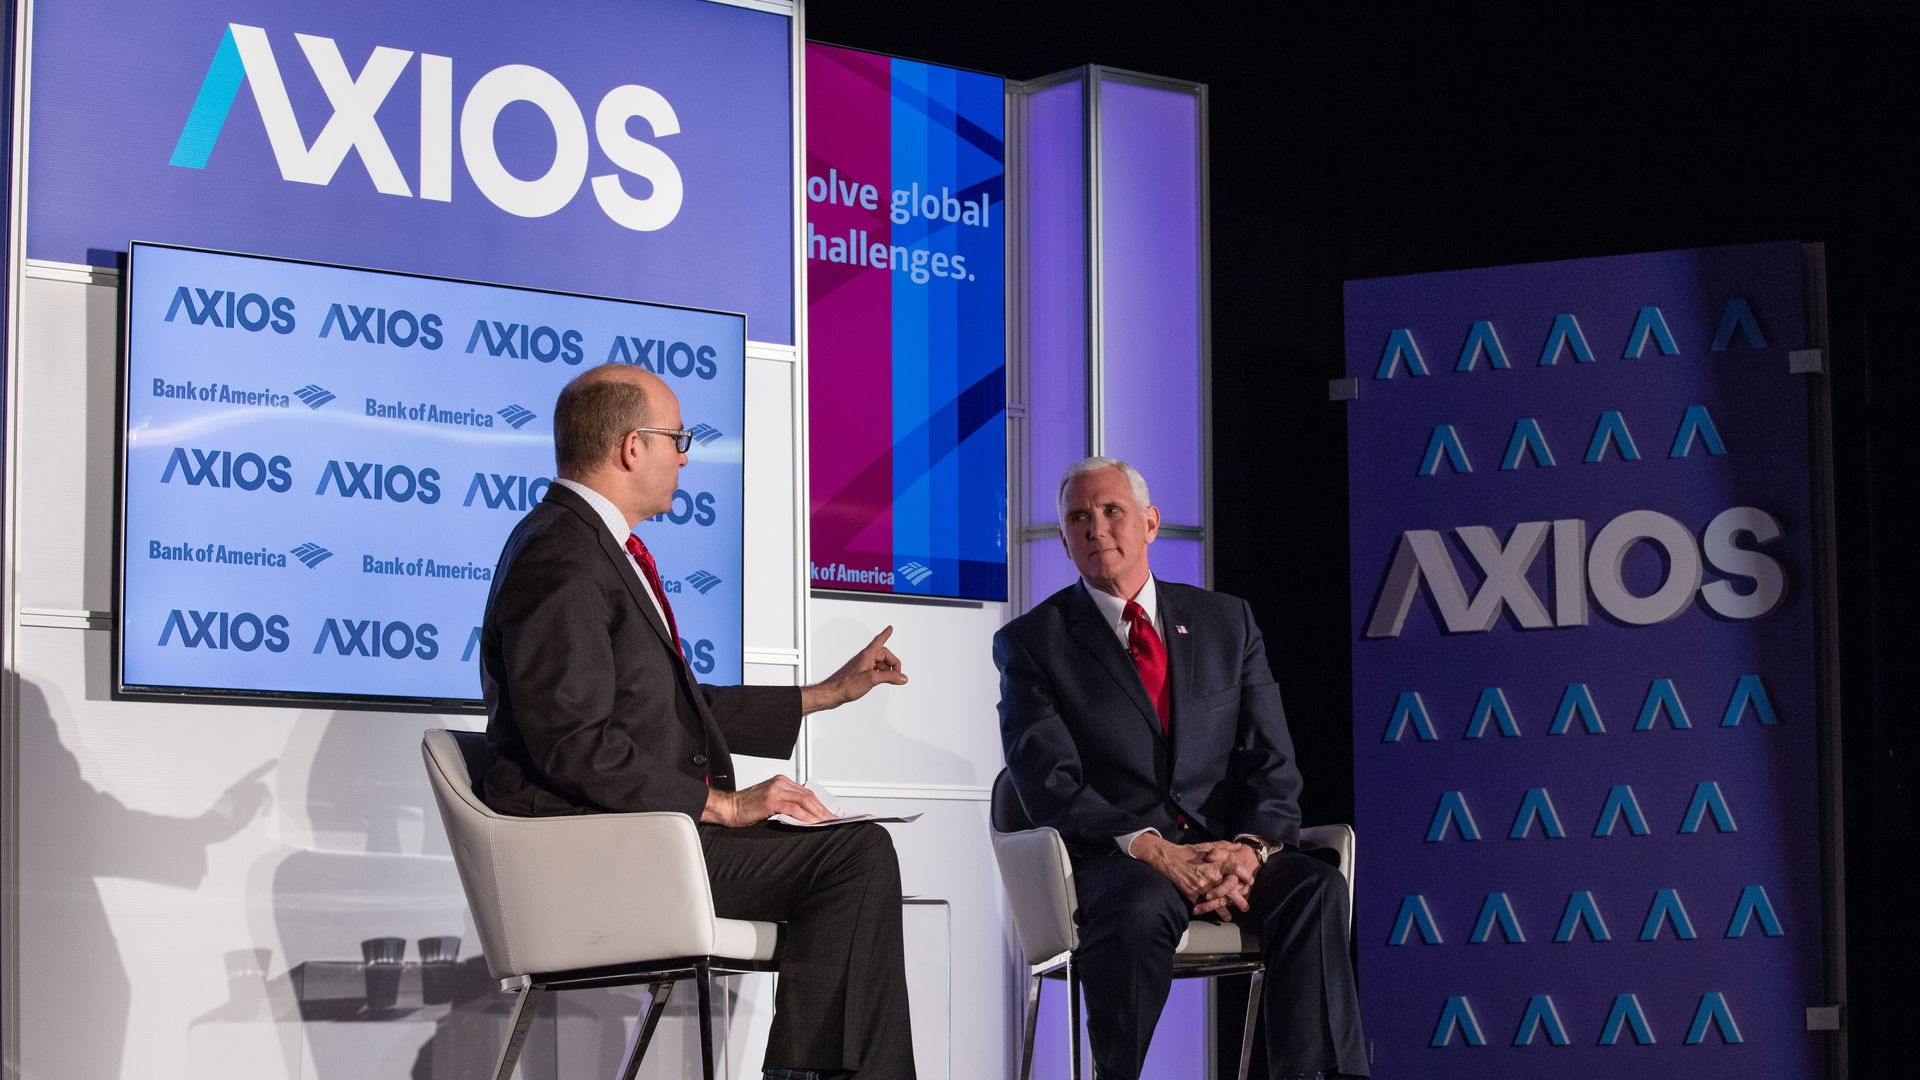 Mike Allen interviewing Mike Pence on the Axios stage.